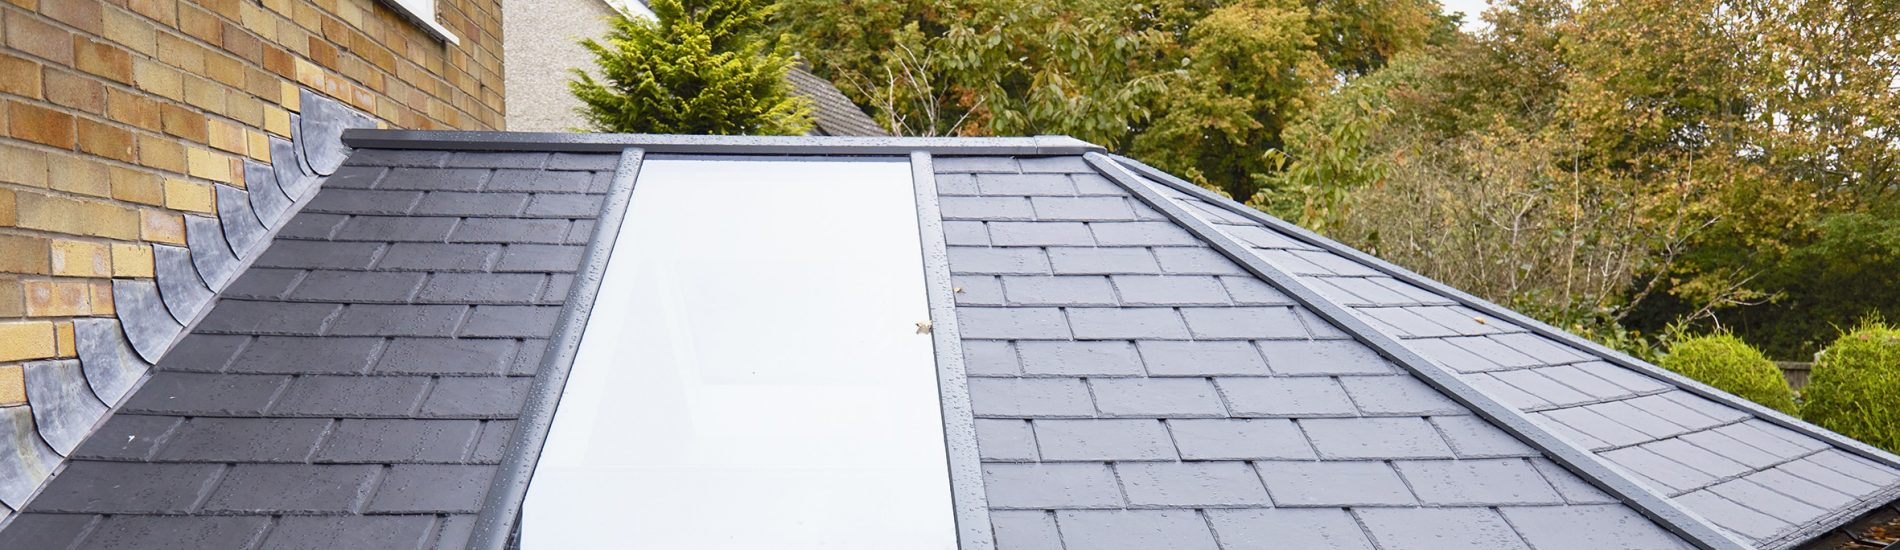 Tiled Replacement Roof Prices, Manchester